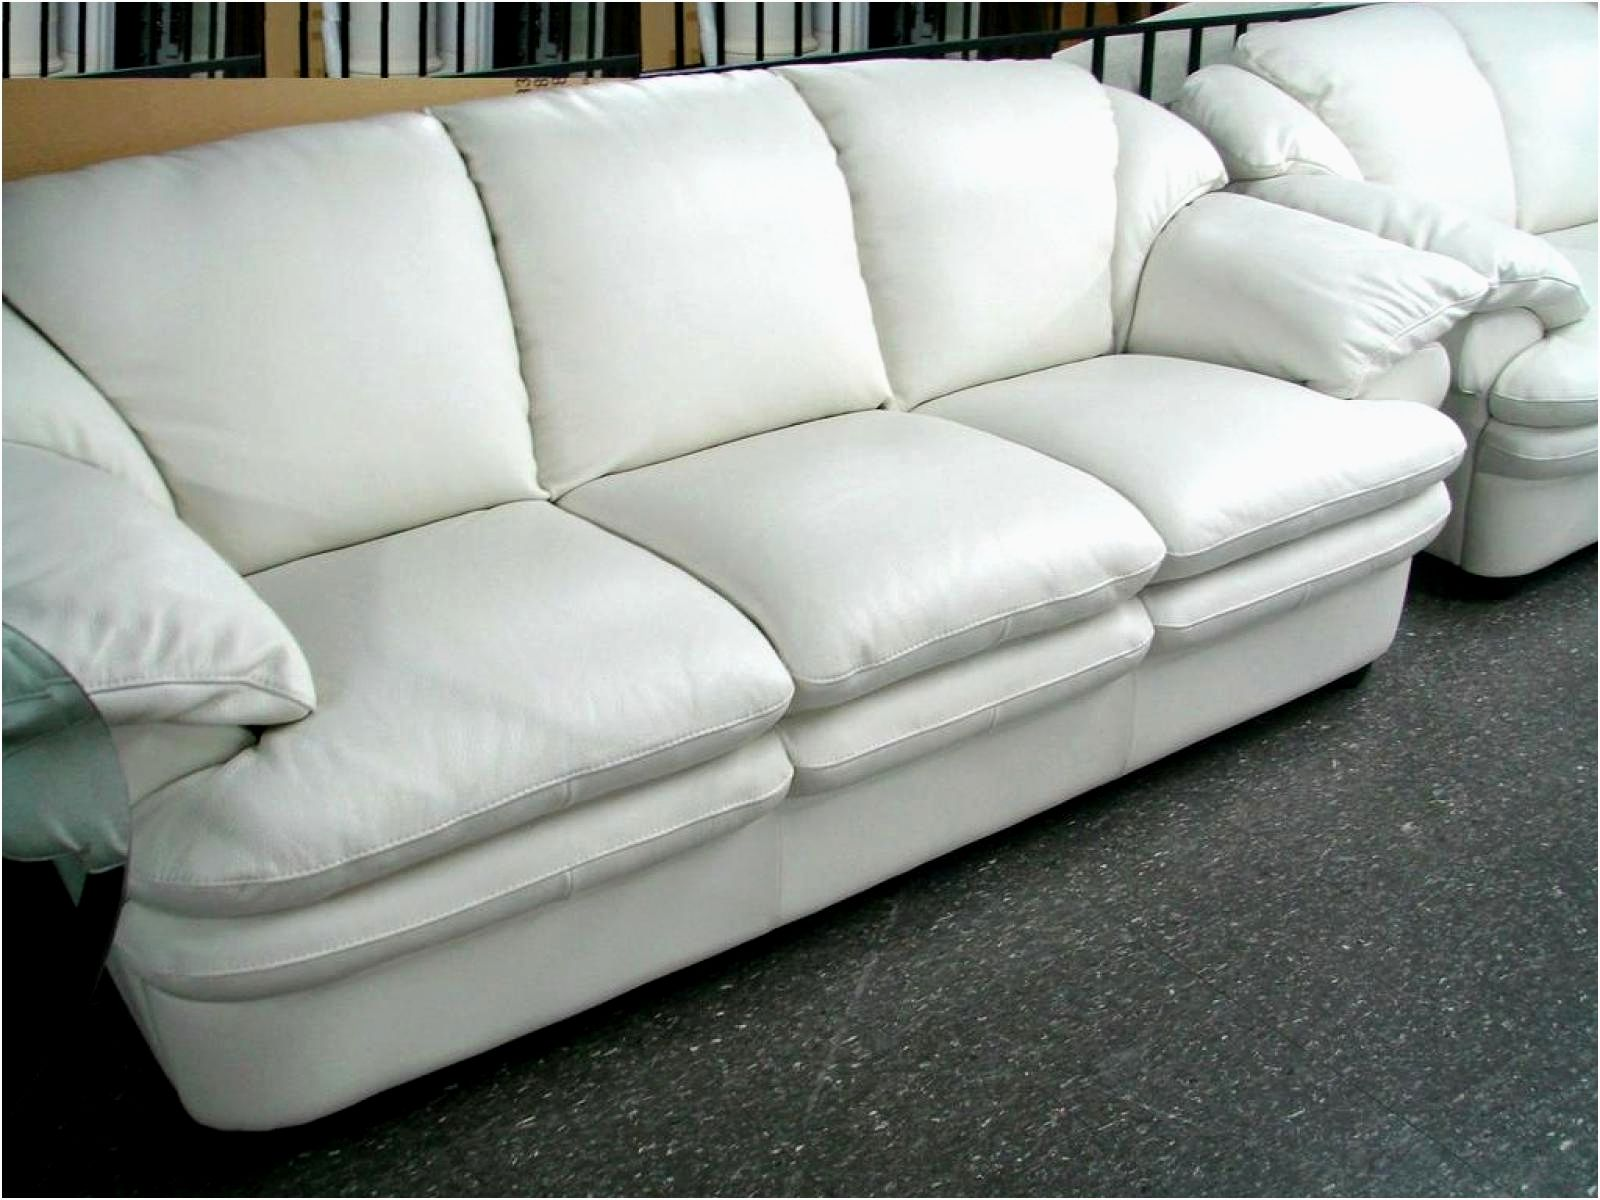 lovely sofa sectionals on sale image-Terrific sofa Sectionals On Sale Décor